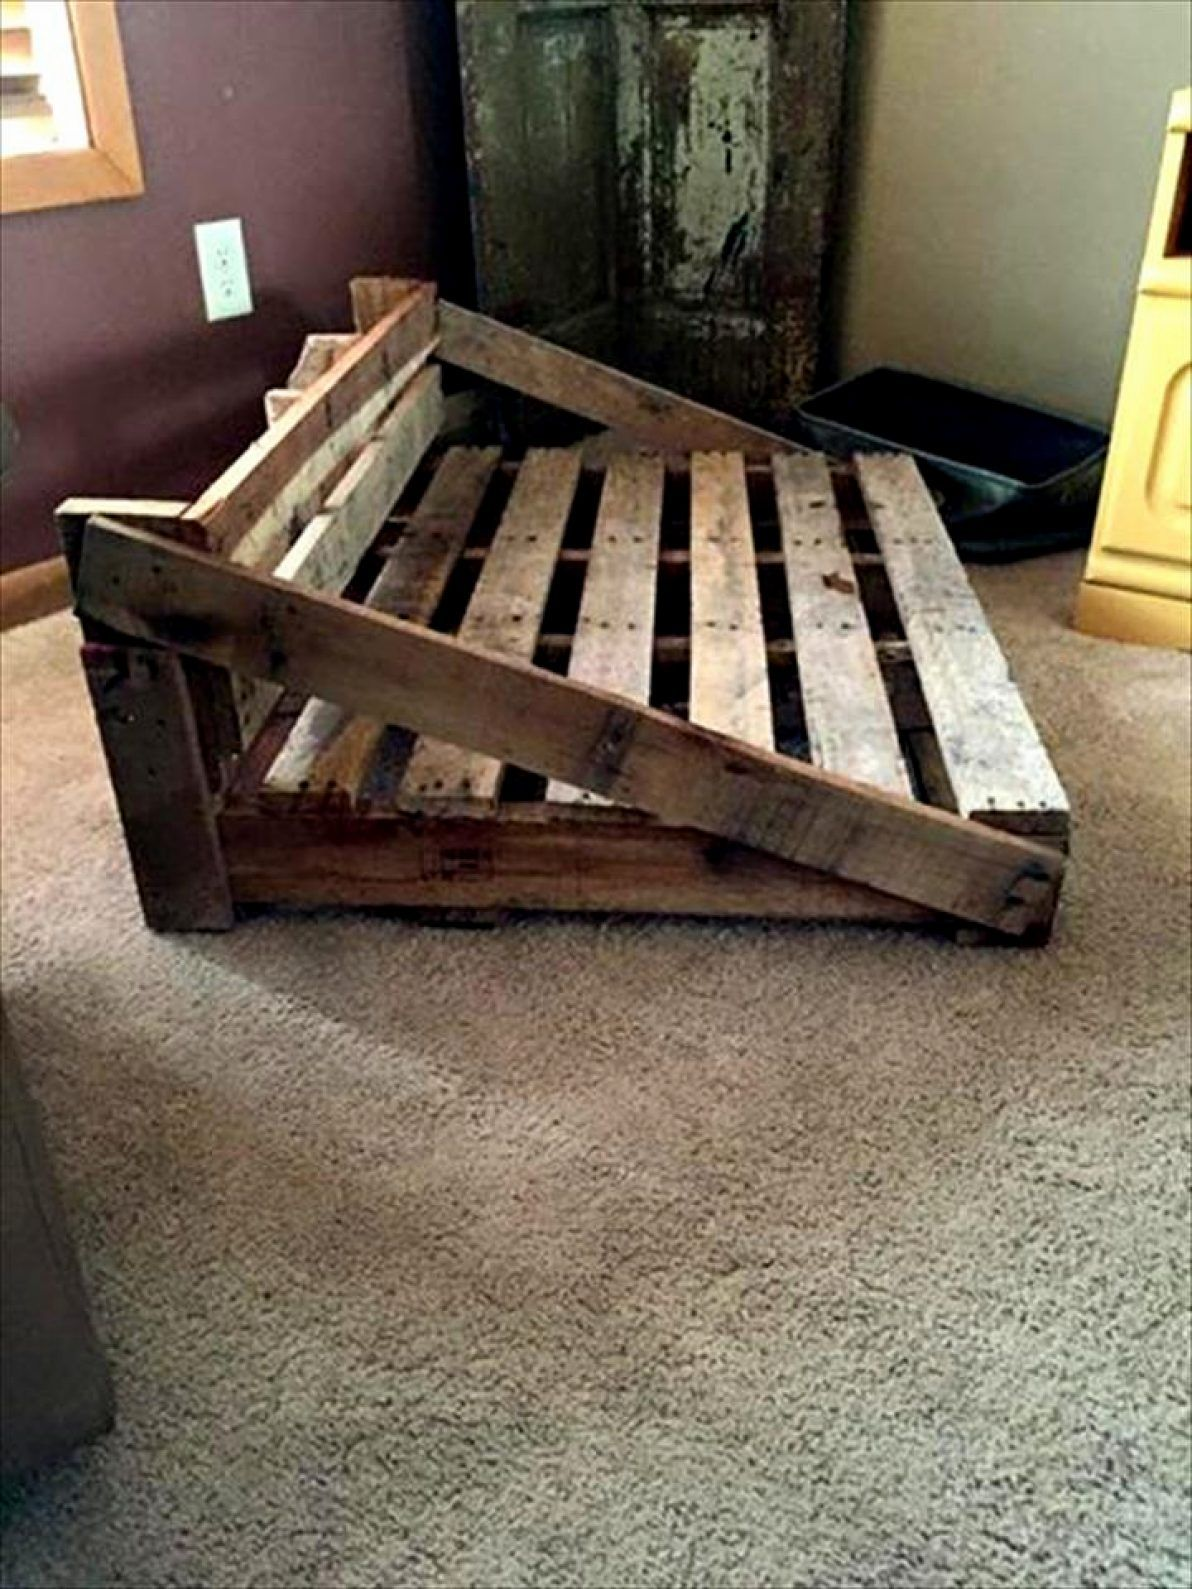 10 Diy Recycled Wood Pallet Dog Bed New Designs Pallet Dog Beds Rustic Dog Beds Wooden Dog Bed